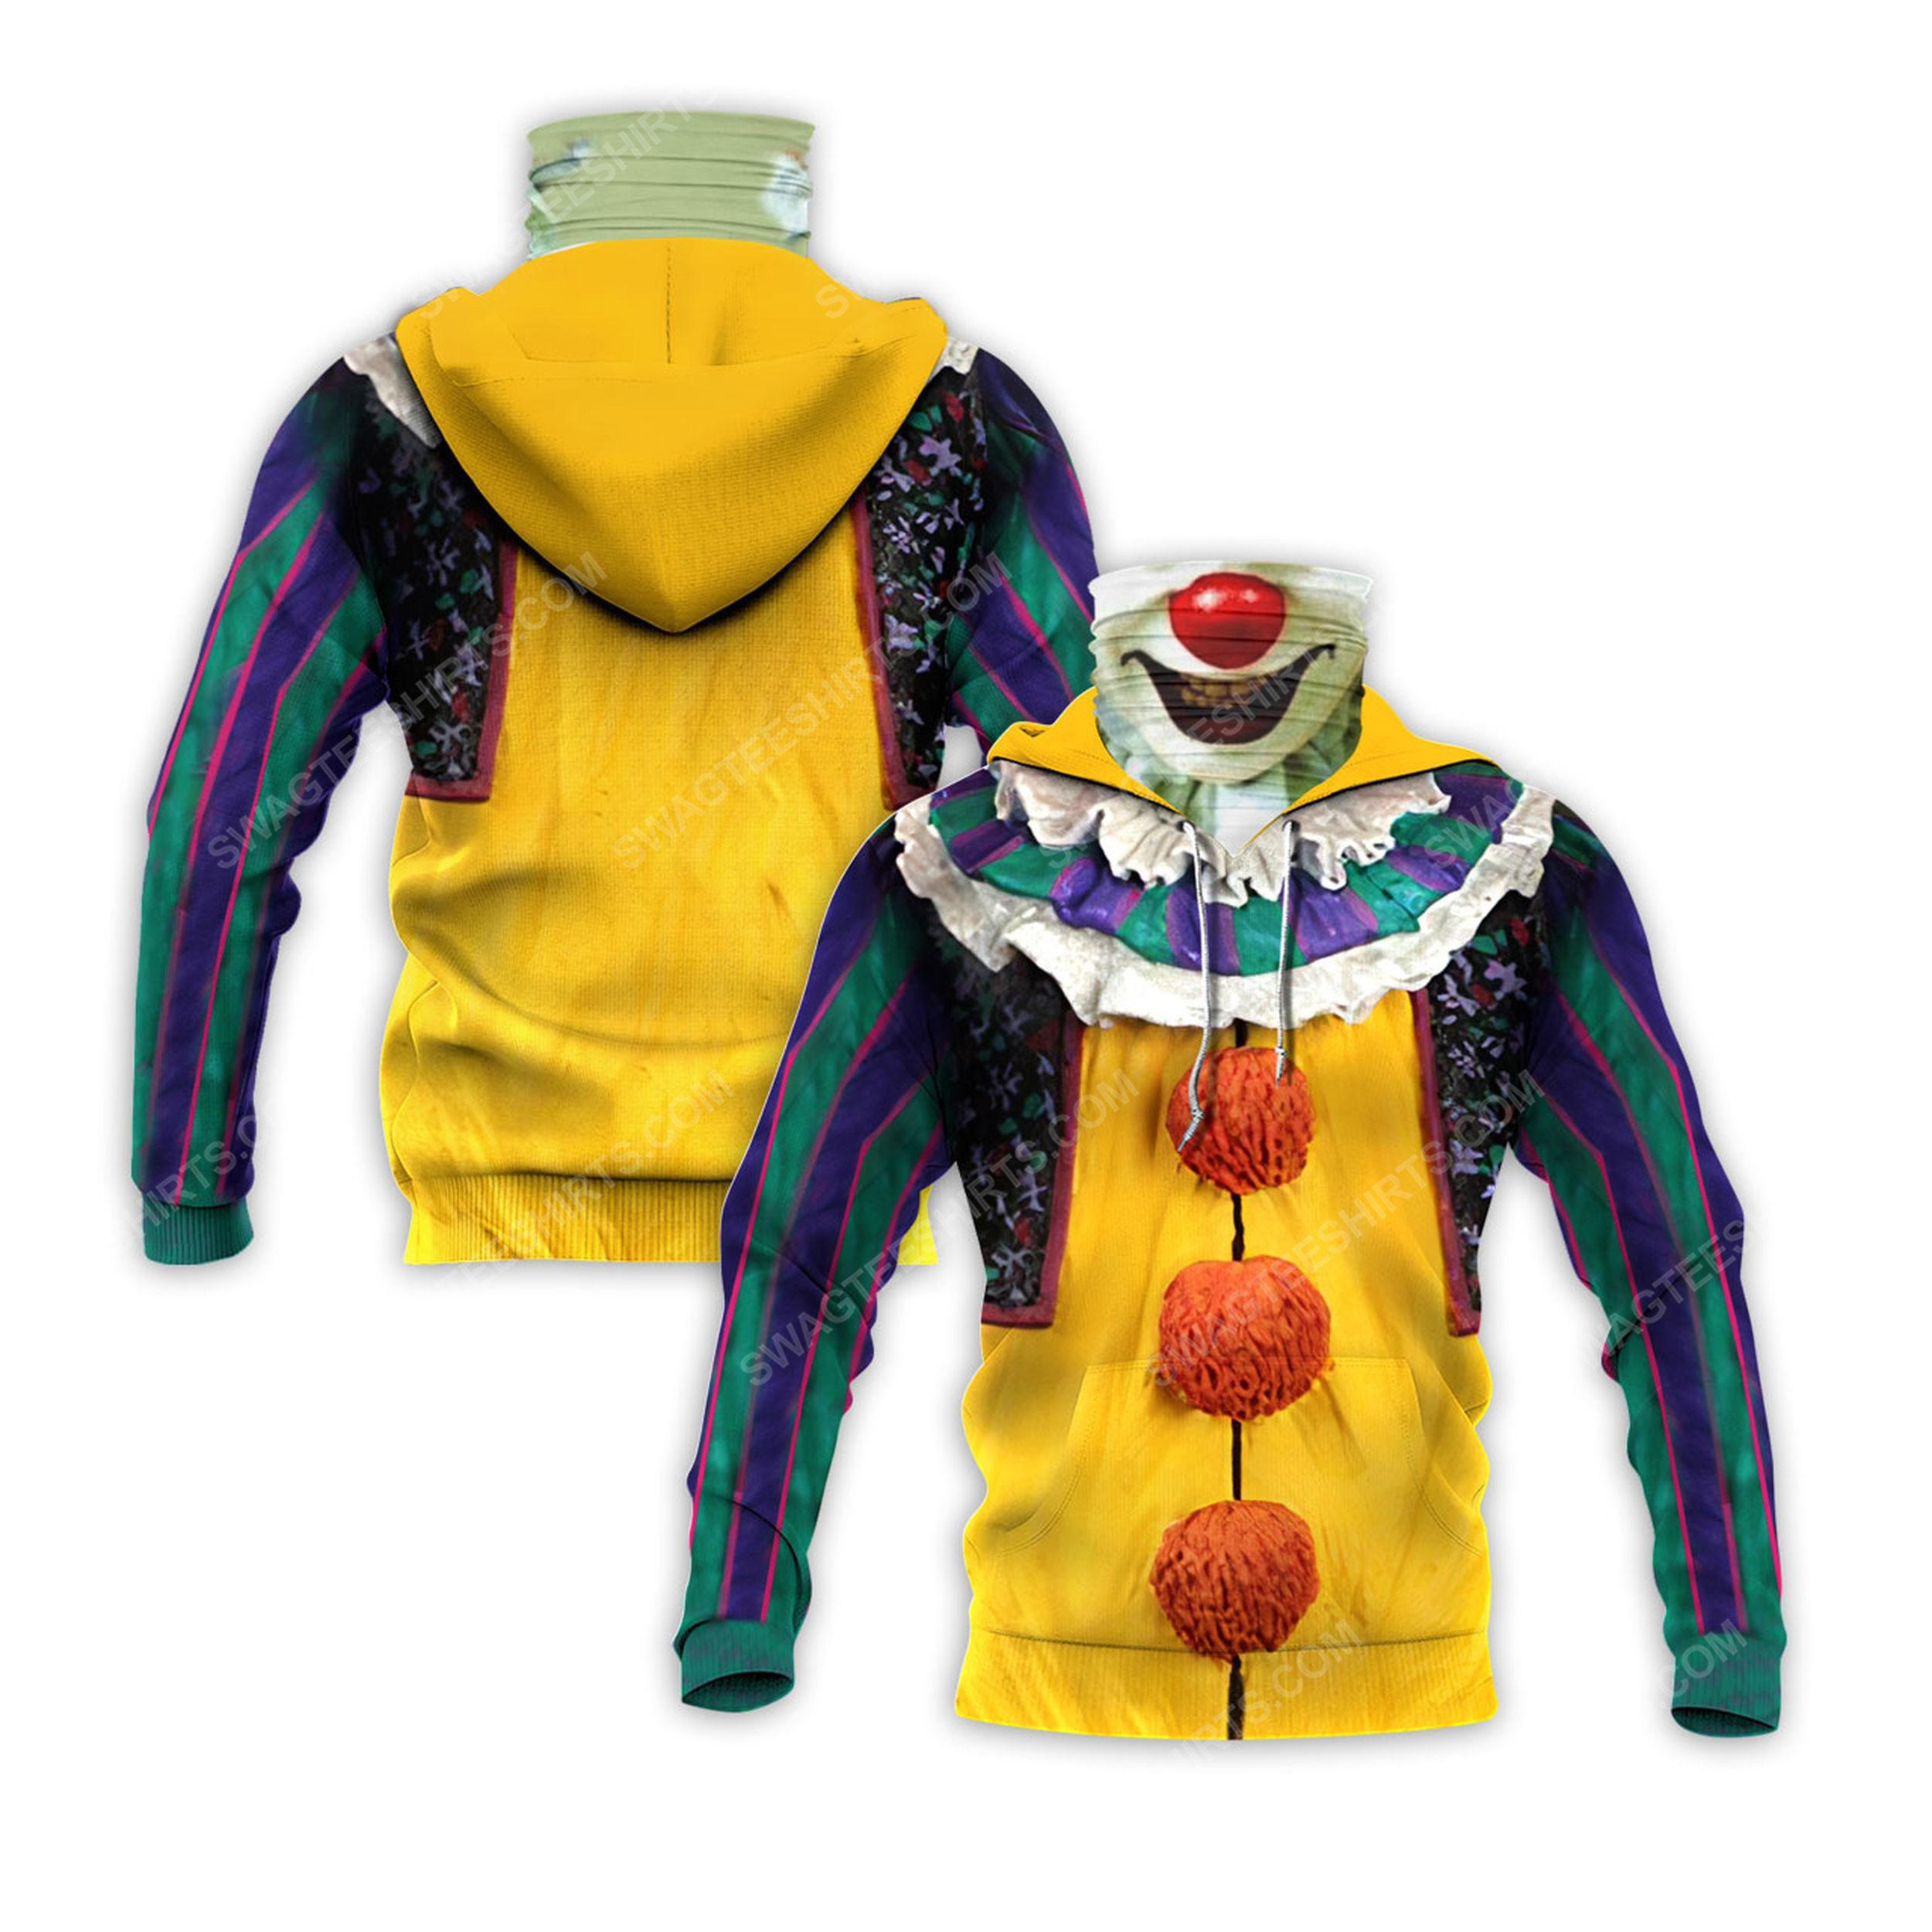 Pennywise the dancing clown for halloween full print mask hoodie 2(1) - Copy